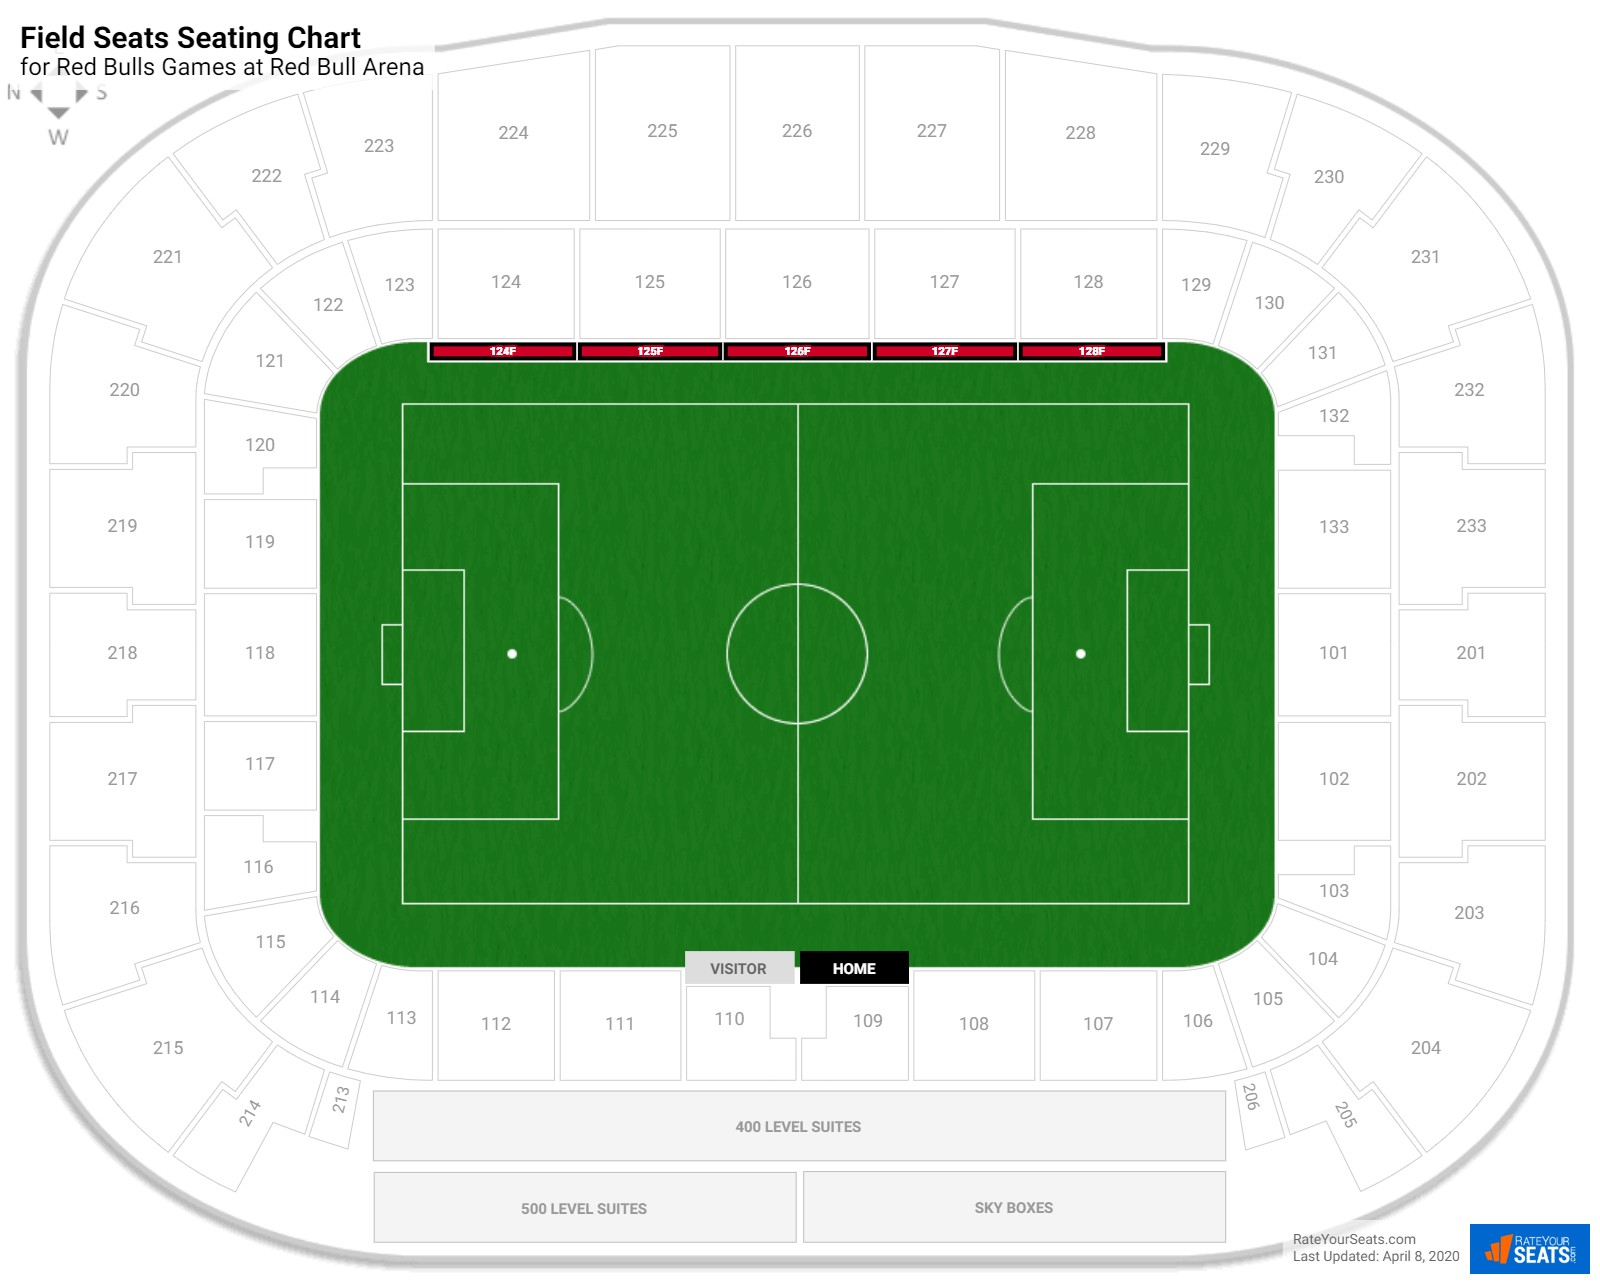 Red Bull Arena Field Seats Seating Chart